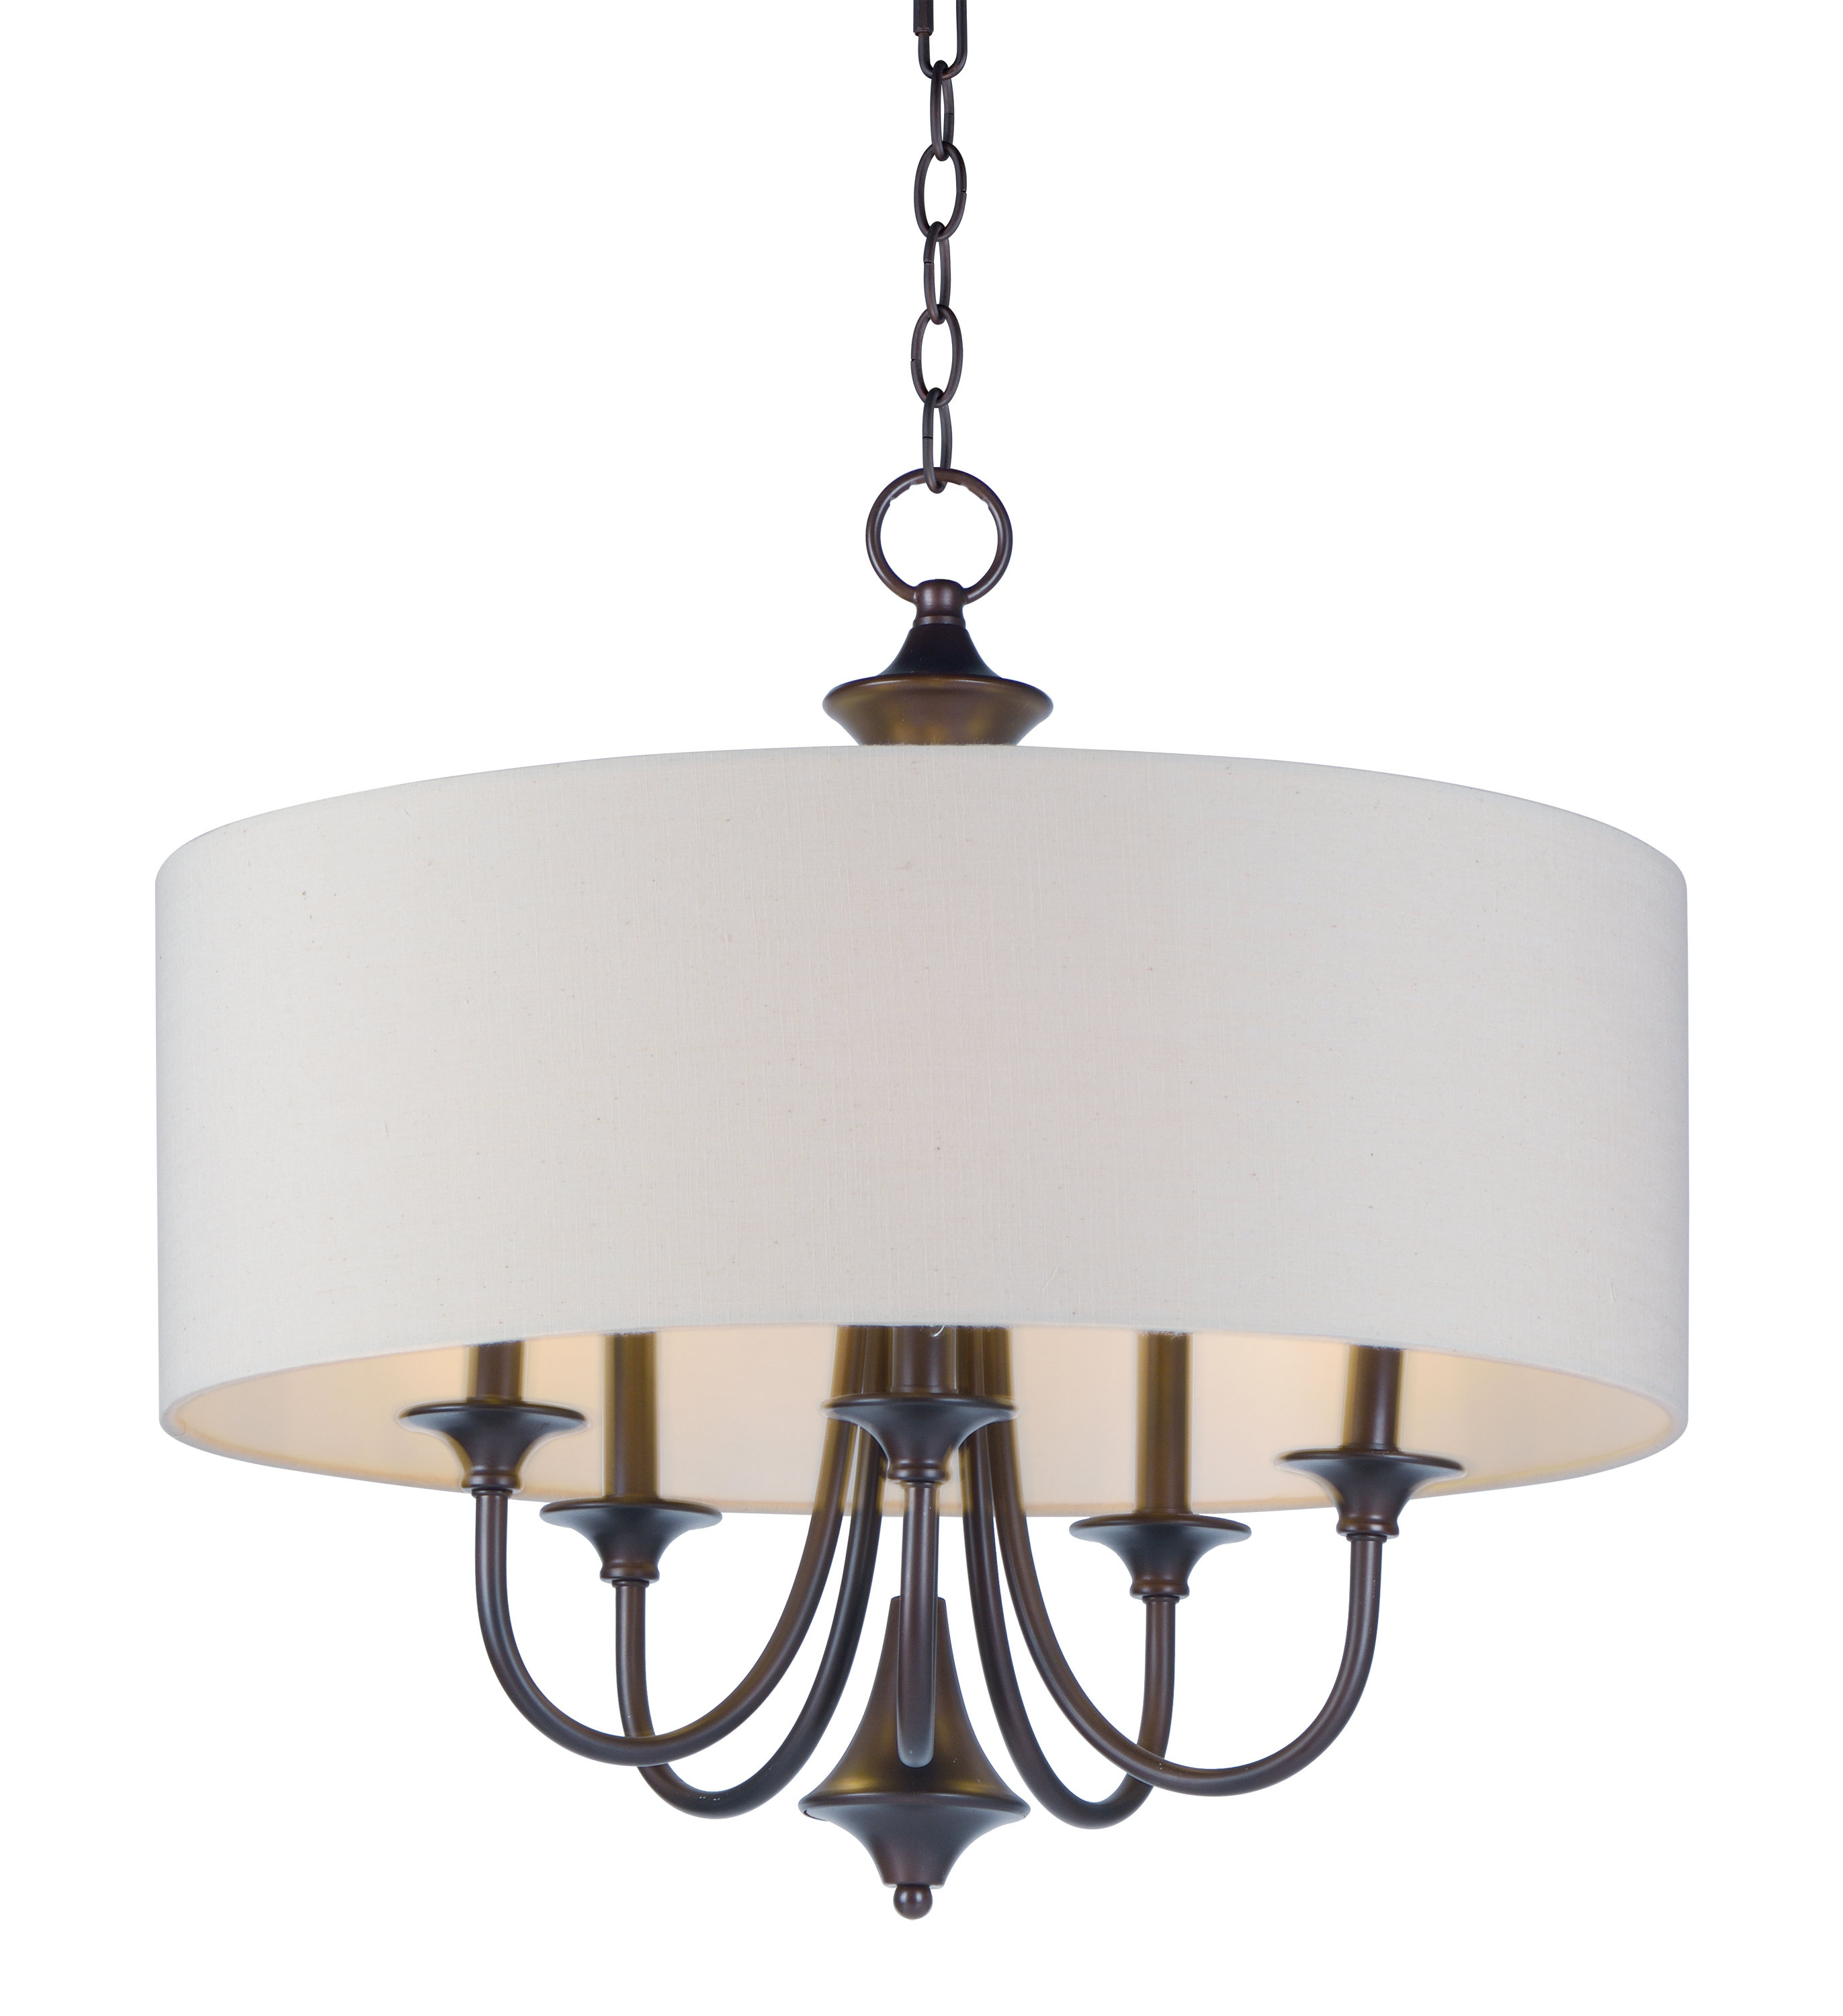 Darby Home Co Becher 5 Light Drum Chandelier Within Most Recently Released Abel 5 Light Drum Chandeliers (Gallery 6 of 20)